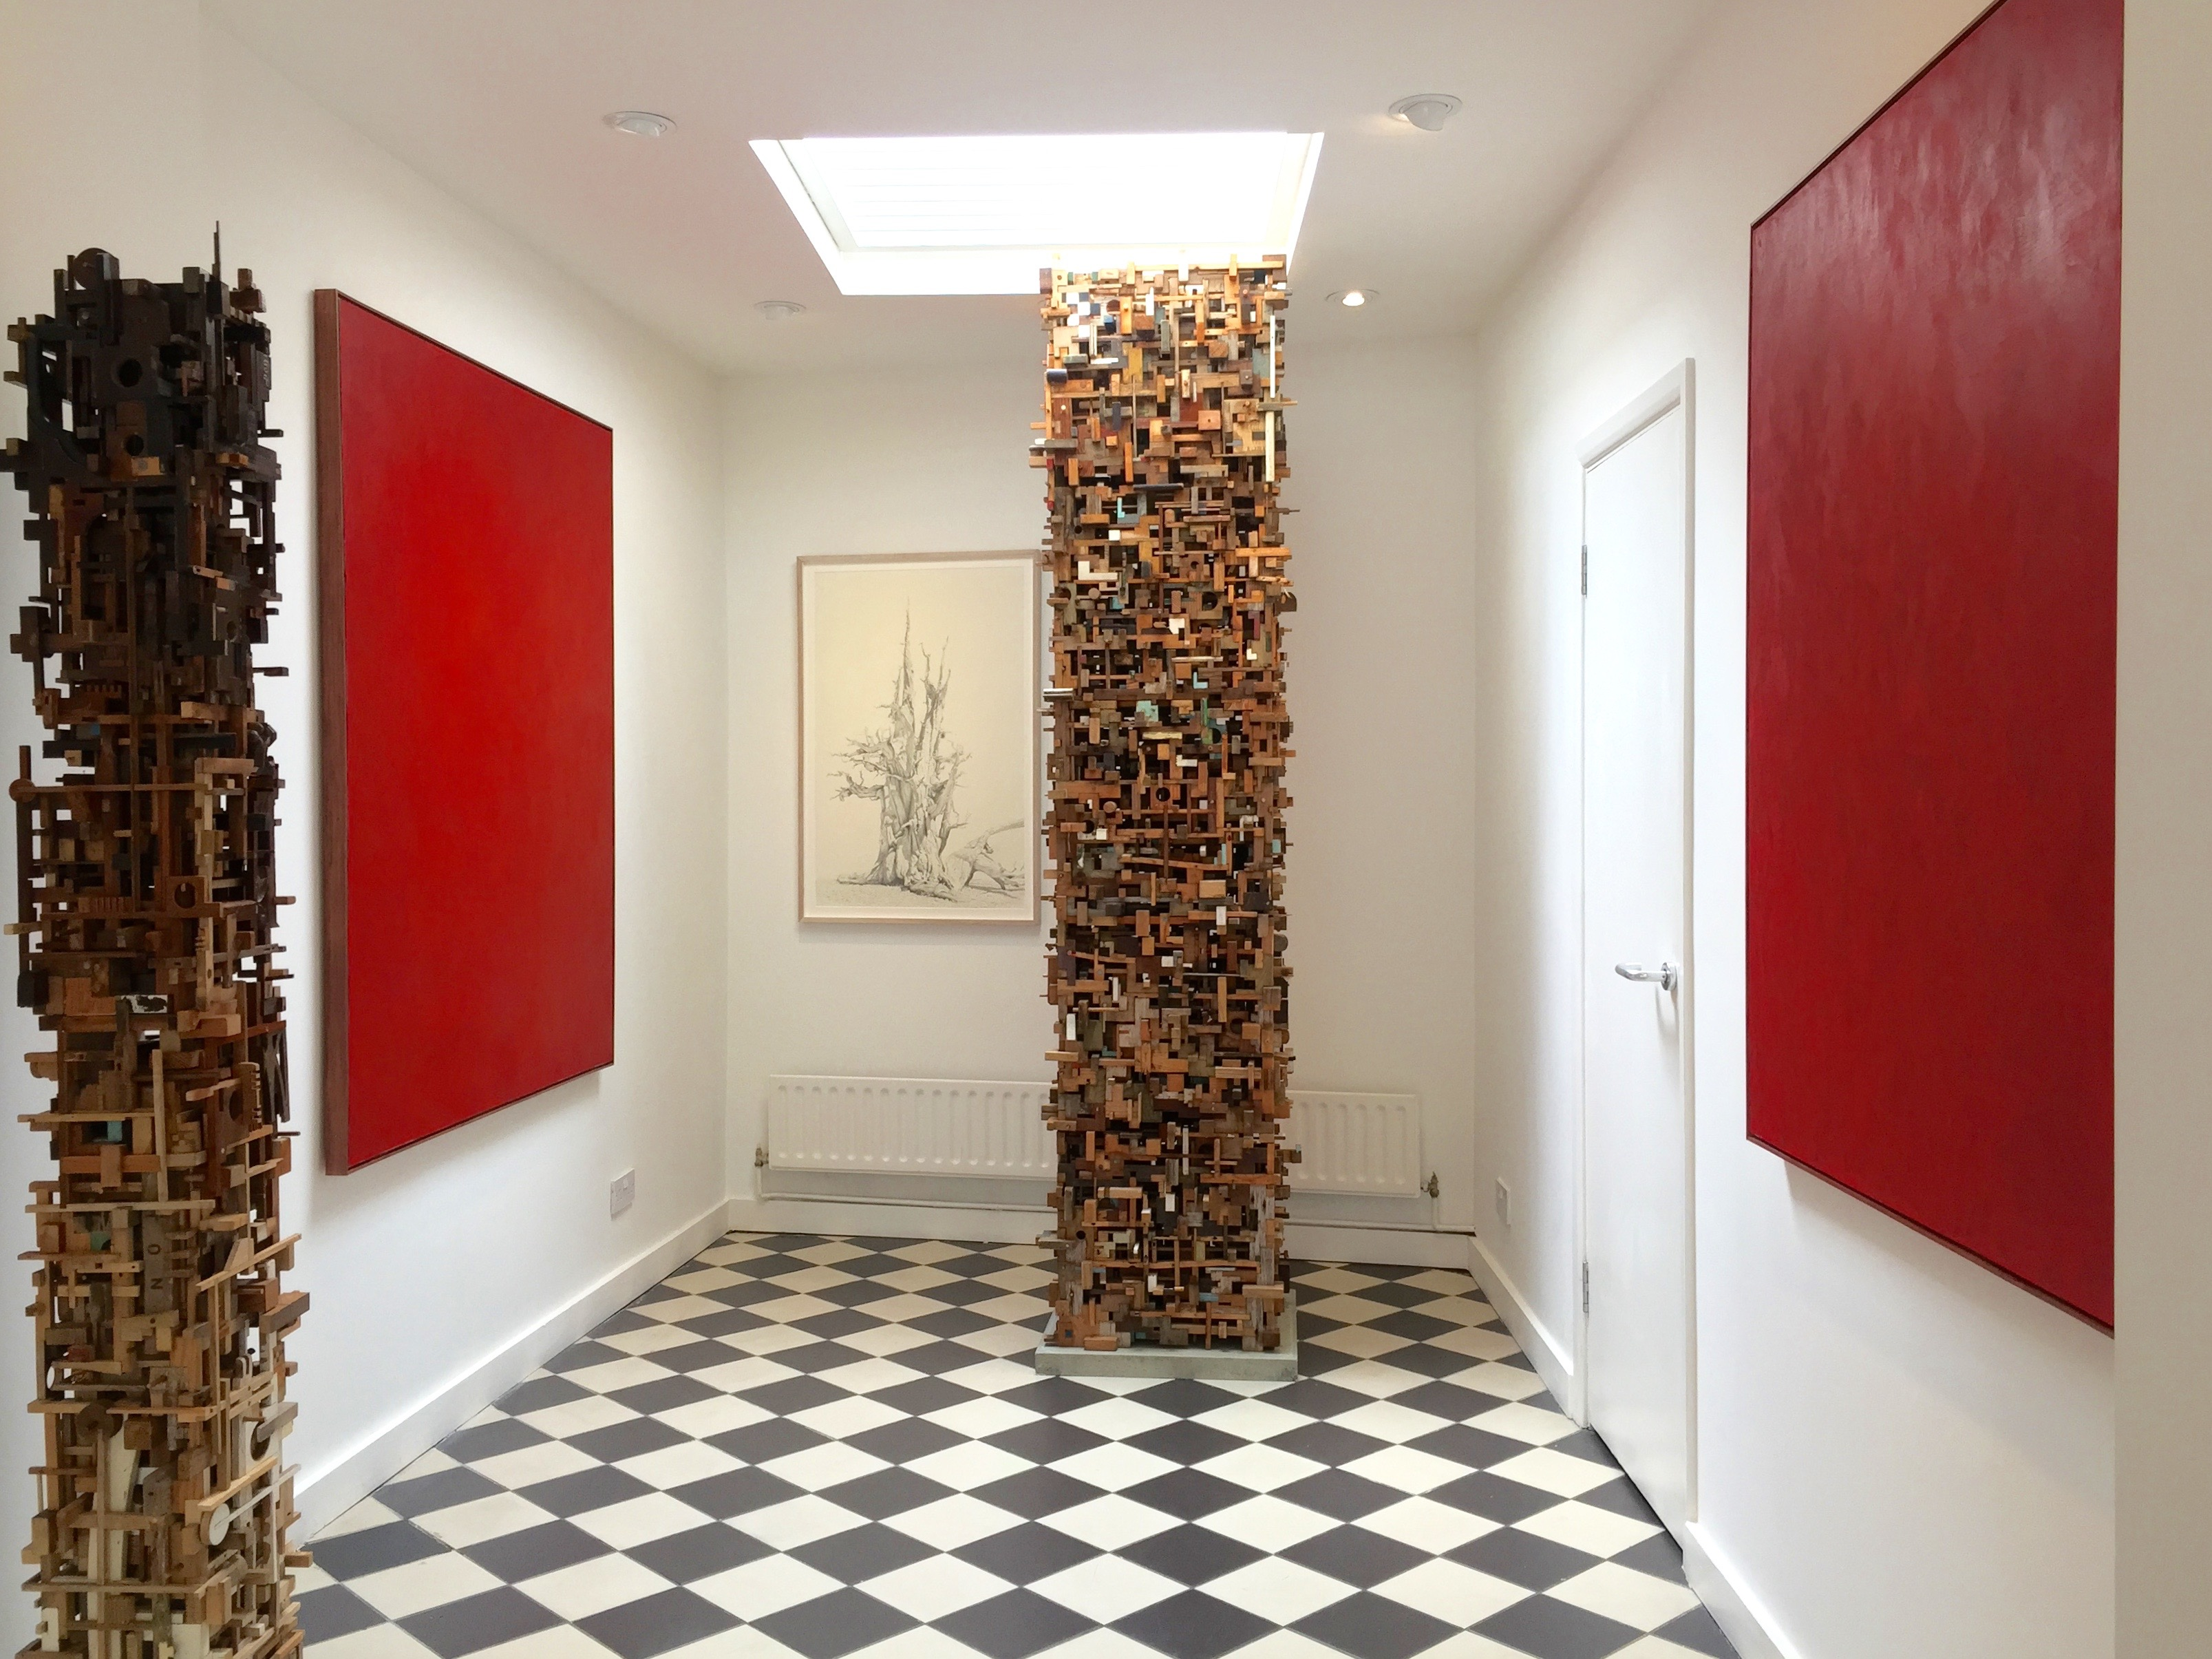 Anders Knutsson: Installation View, In a Silent Way, Knight Webb Gallery